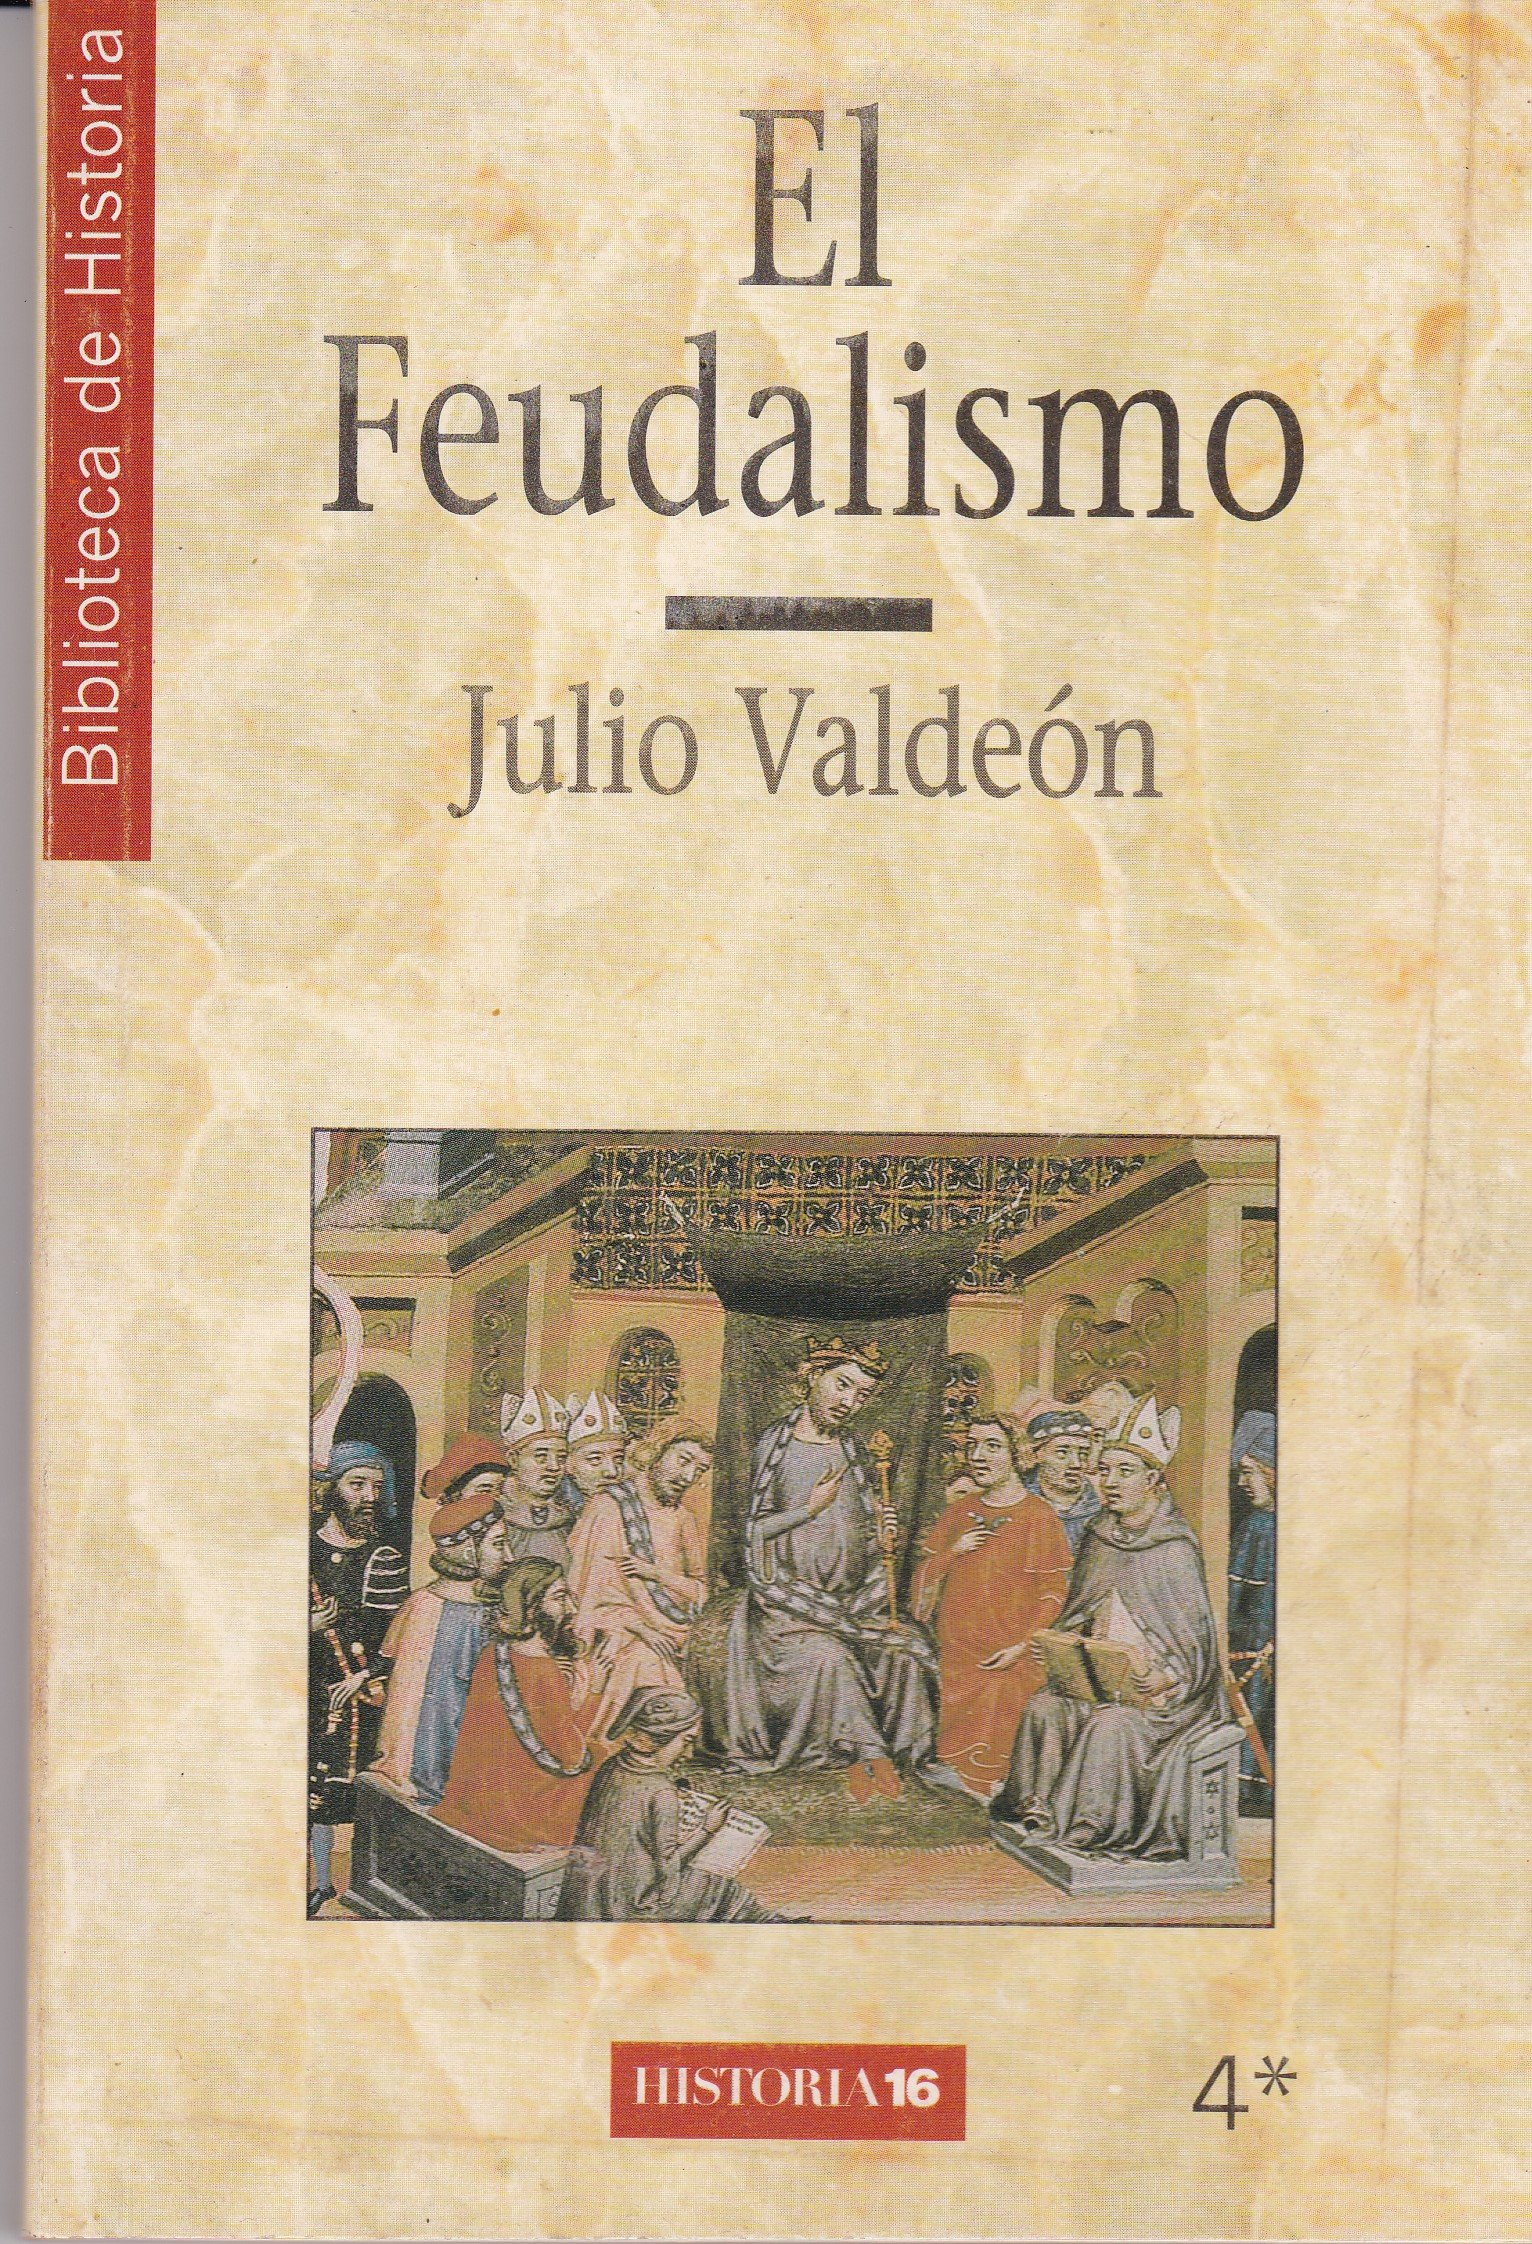 EL FEUDALISMO (2 TOMOS): Amazon.es: VALDEON, JULIO: Libros